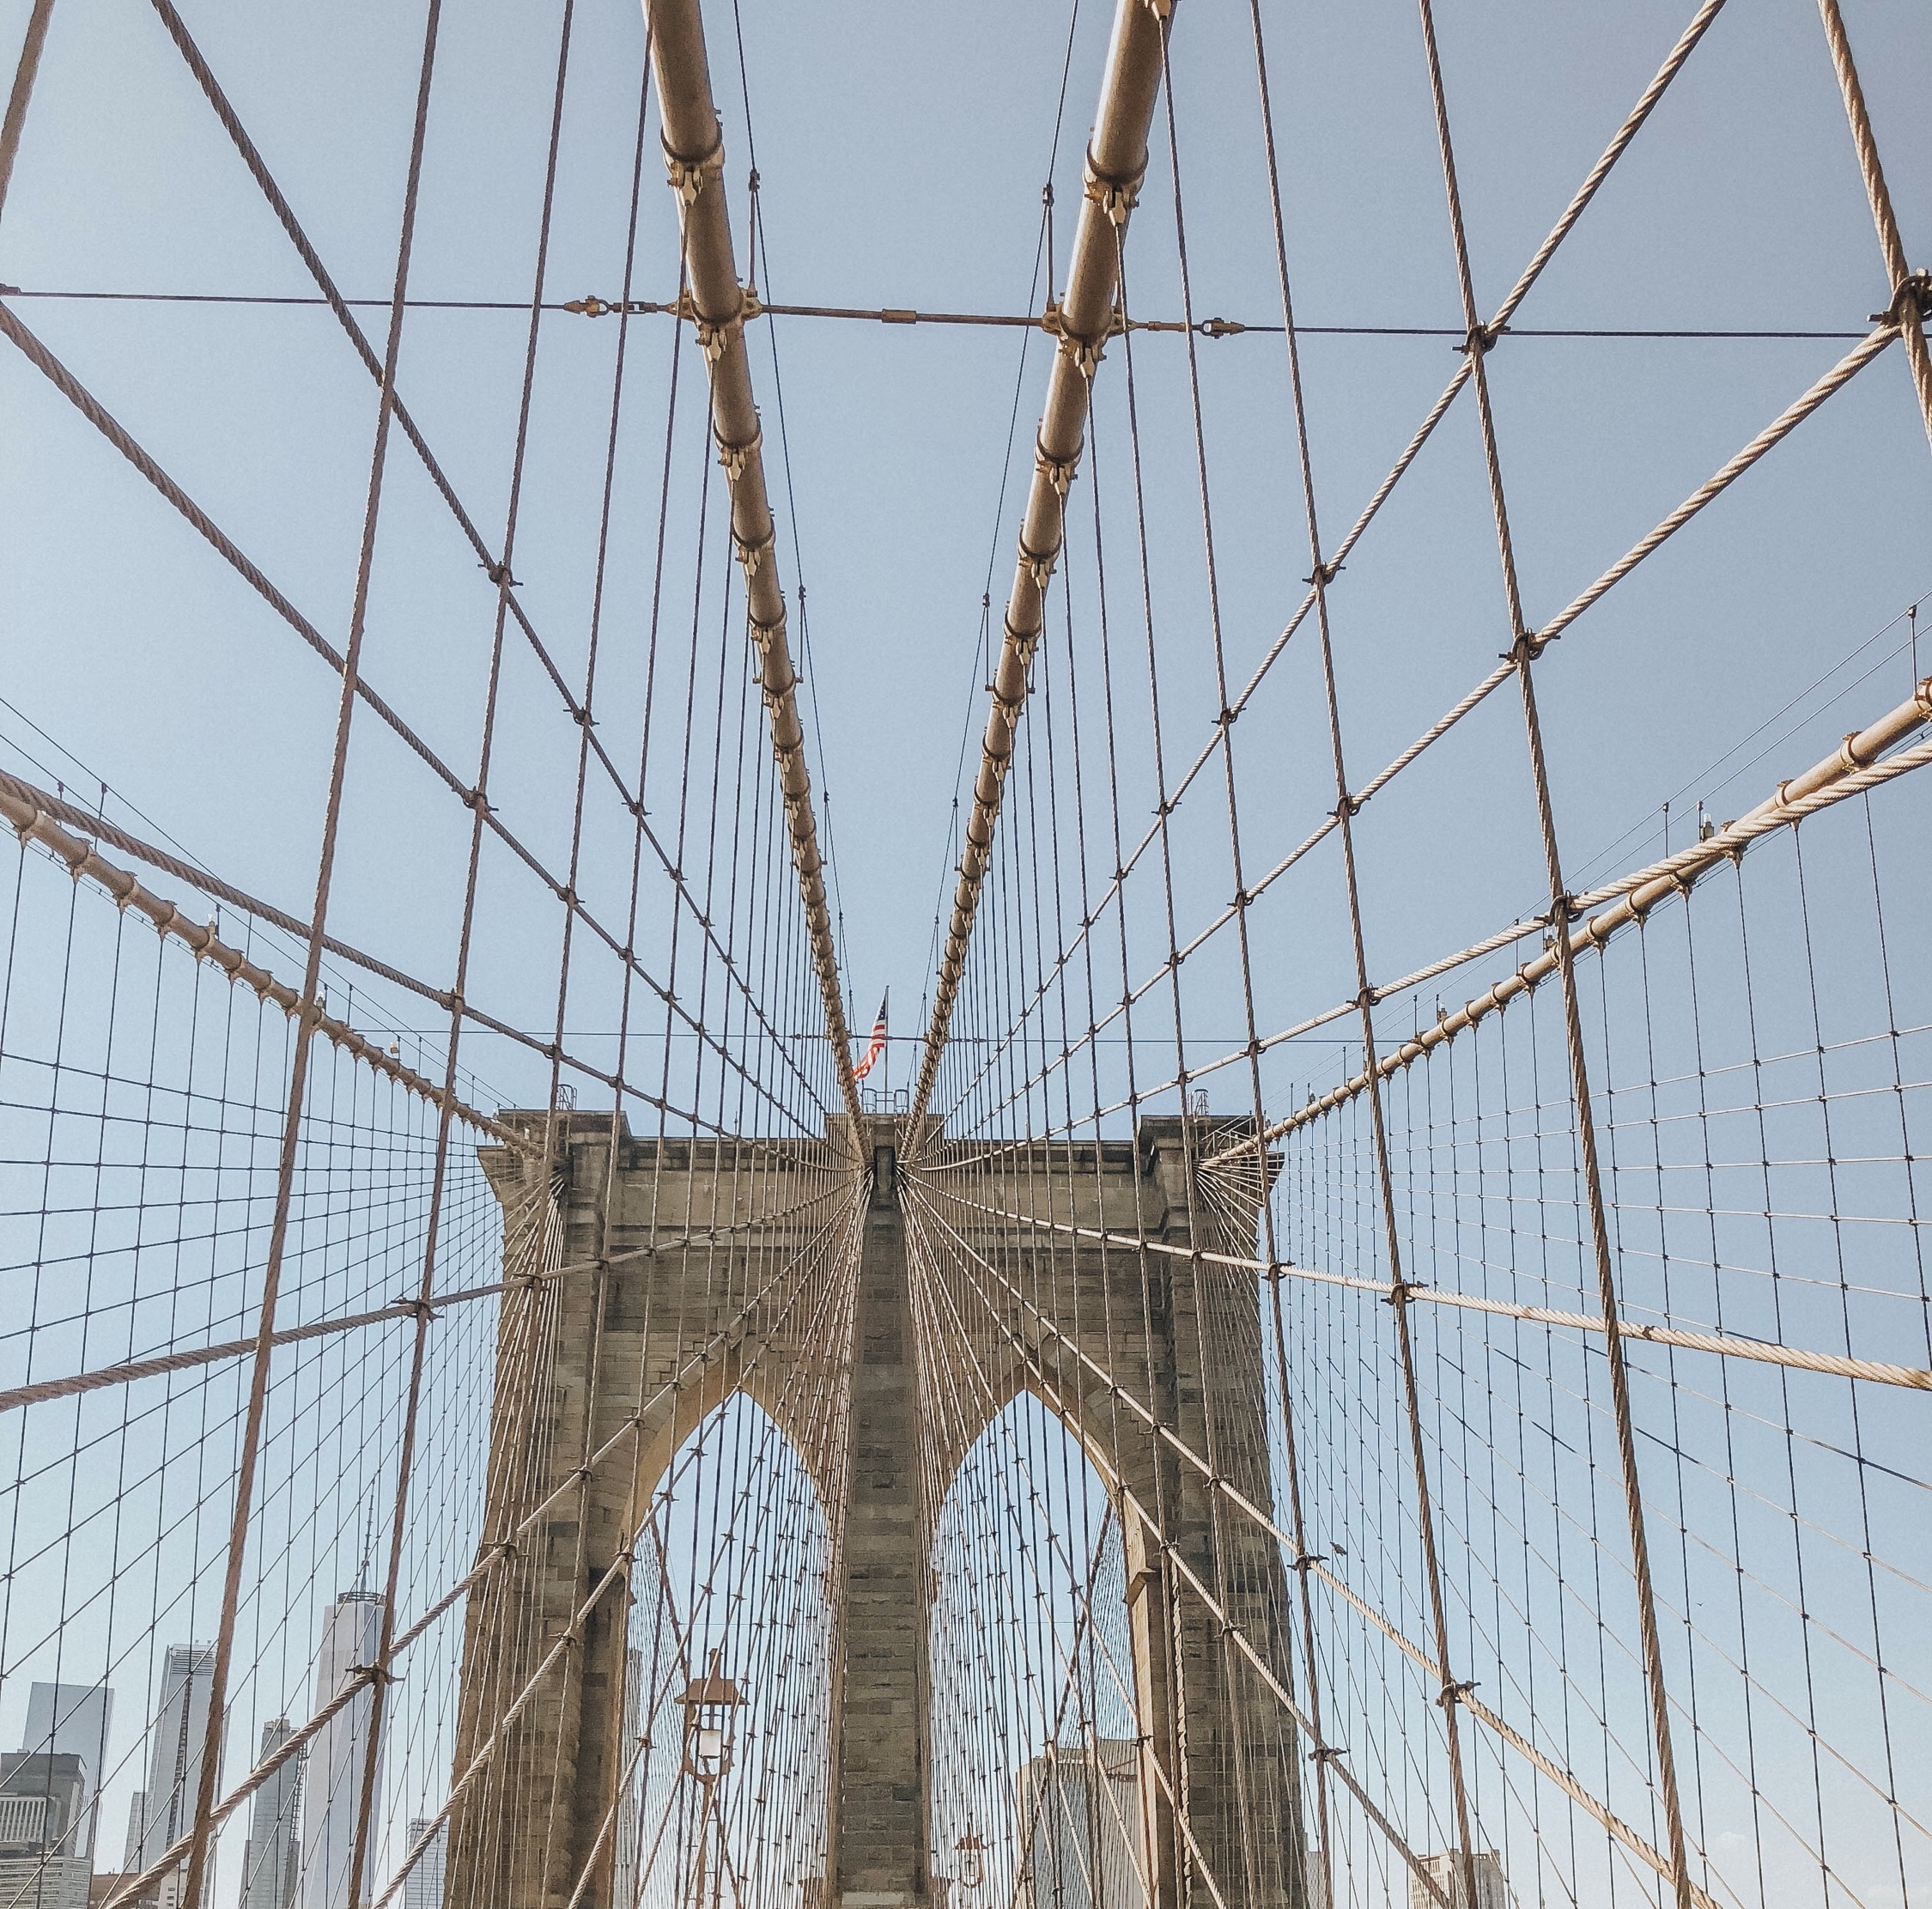 Photo and Editing by: Elle Rigg | Brooklyn Bridge, NY